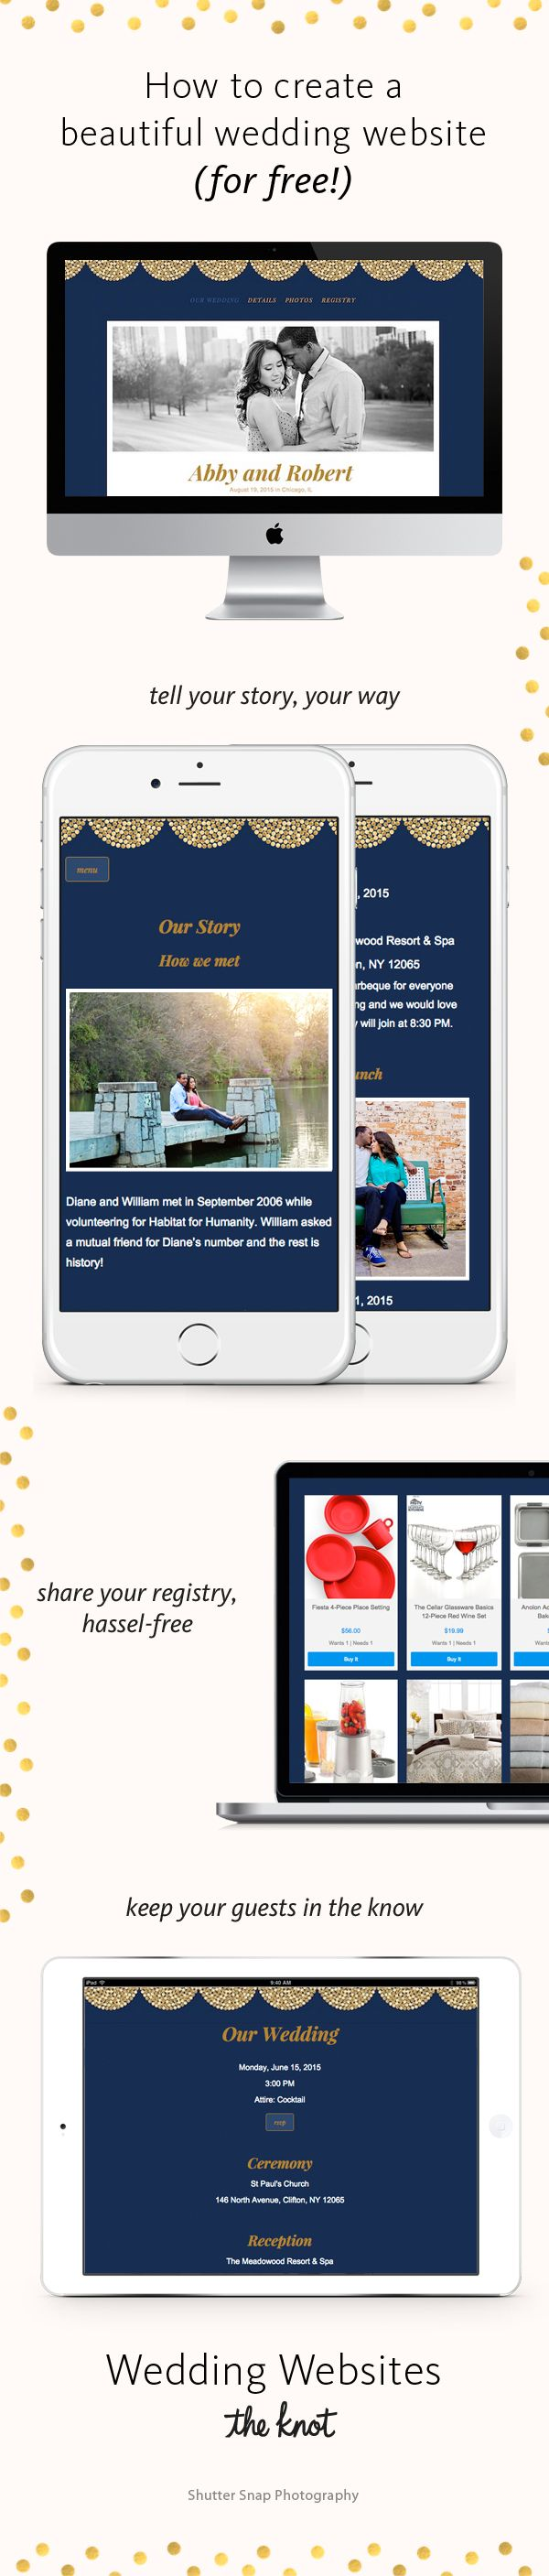 With The Knotu0027s Wedding Websites, Theyu0027re